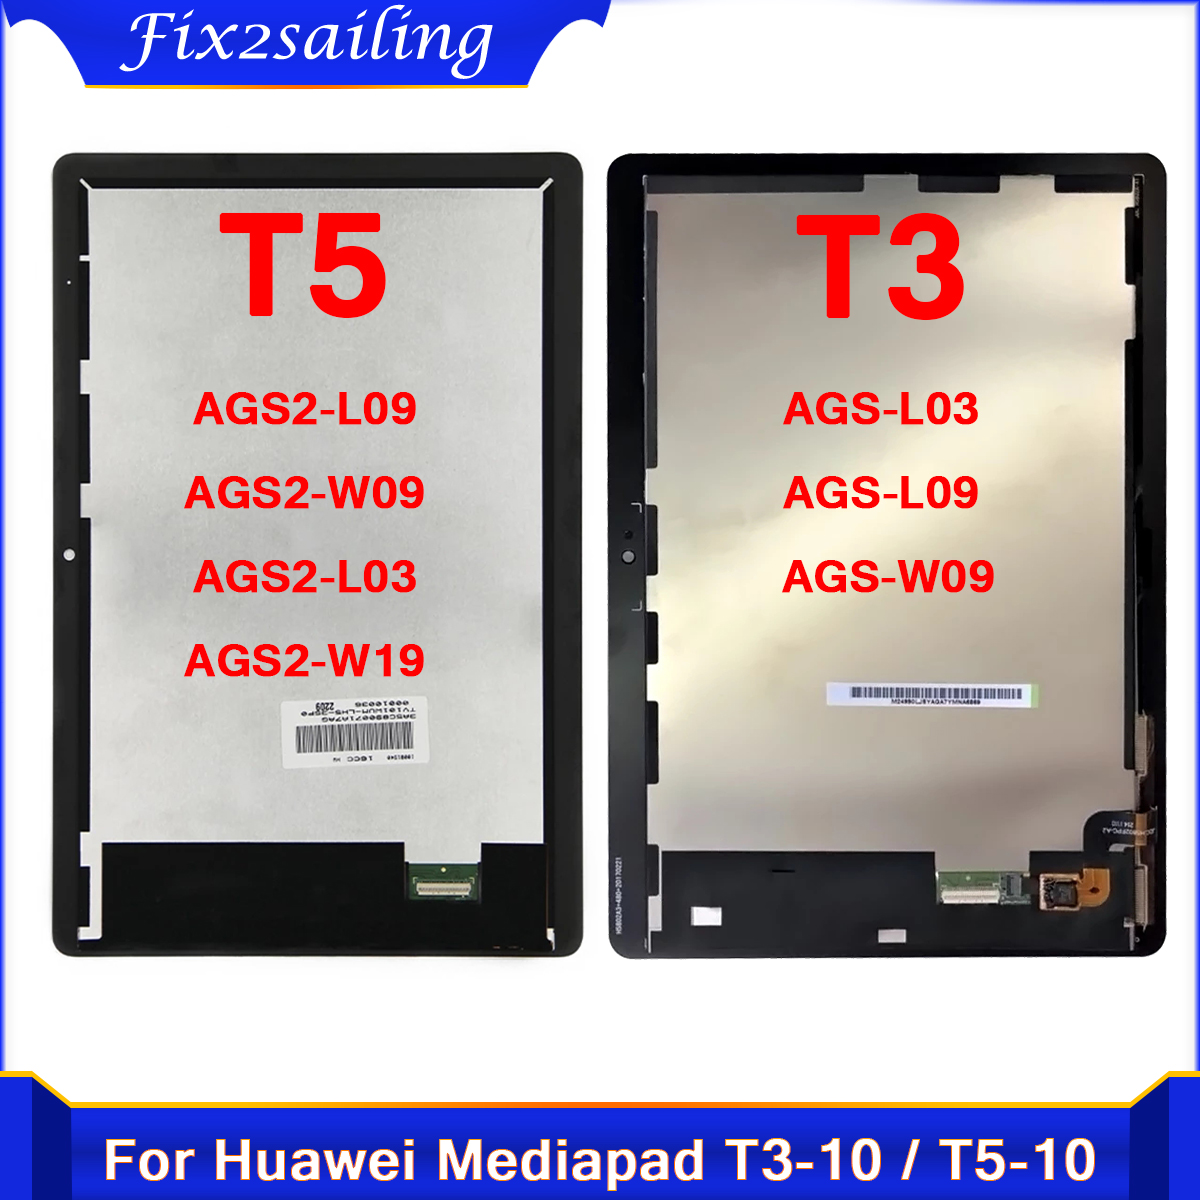 Test LCD Display For Huawei MediaPad T3 T5 10 AGS-L03 AGS-L09 AGS-W09 AGS2-L09 AGS2-W09 AGS2-L03 Touch Screen Digitizer Assembly